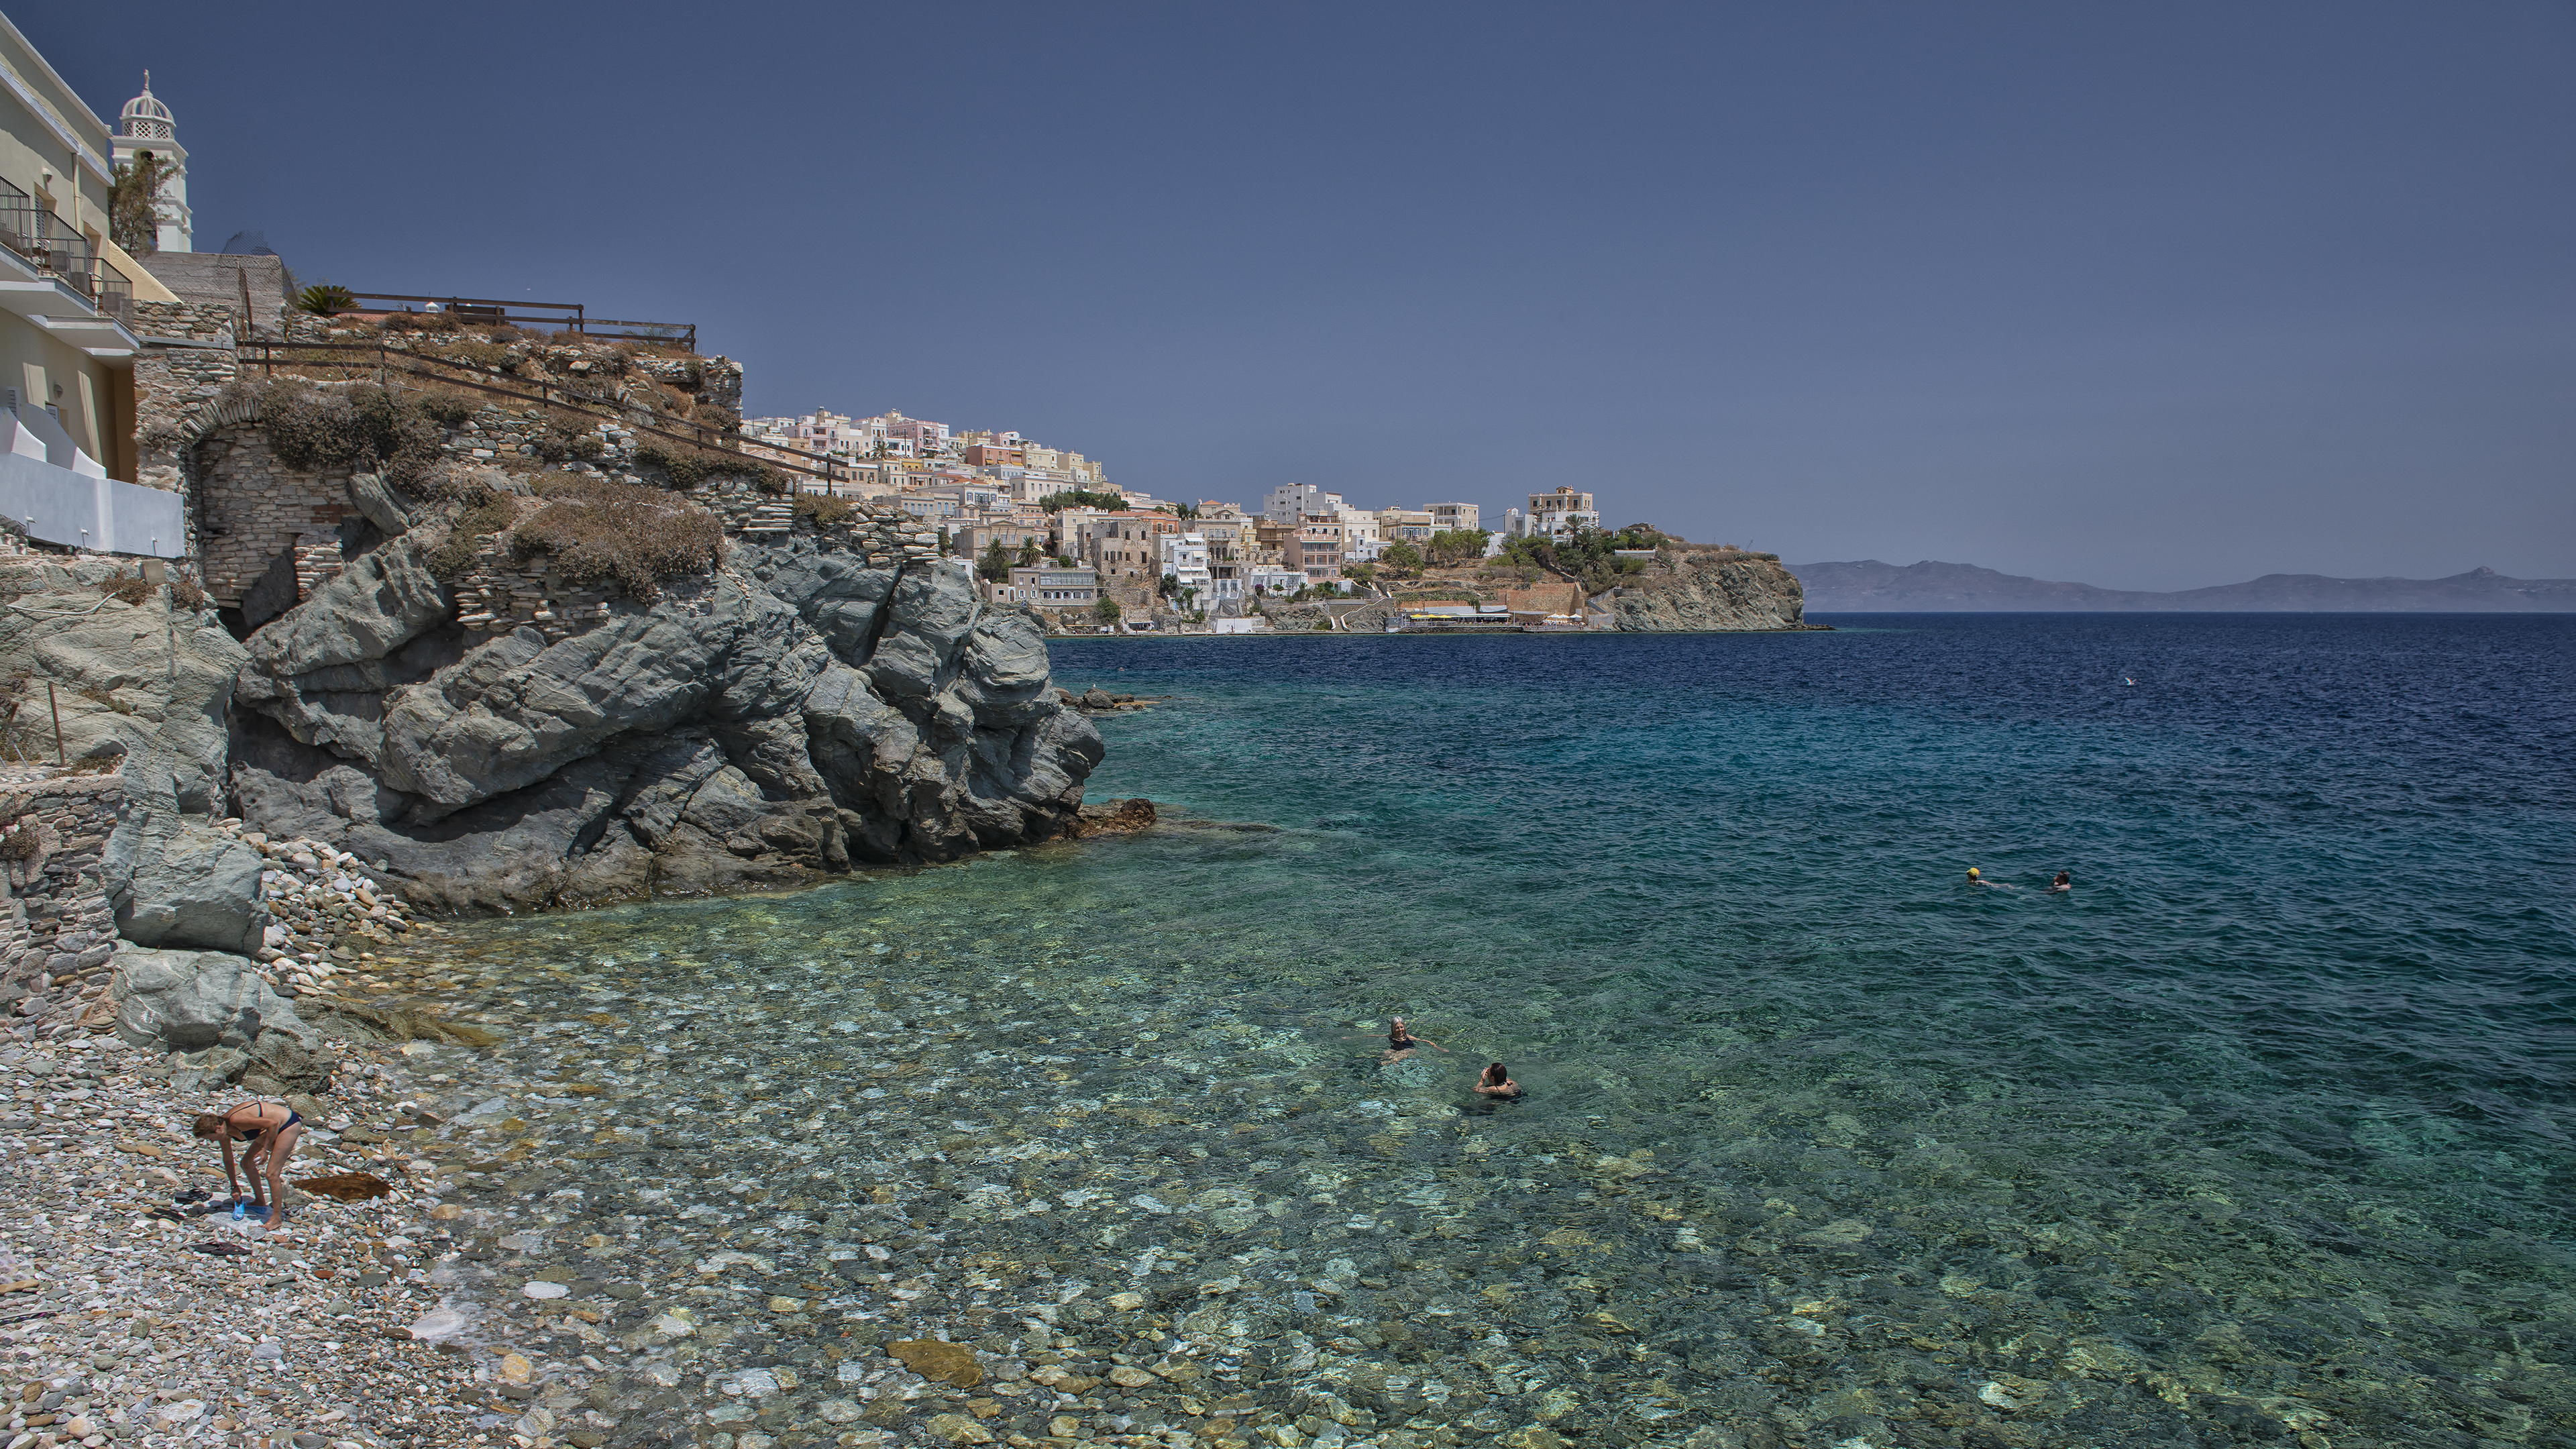 Beach in Syros, Greece